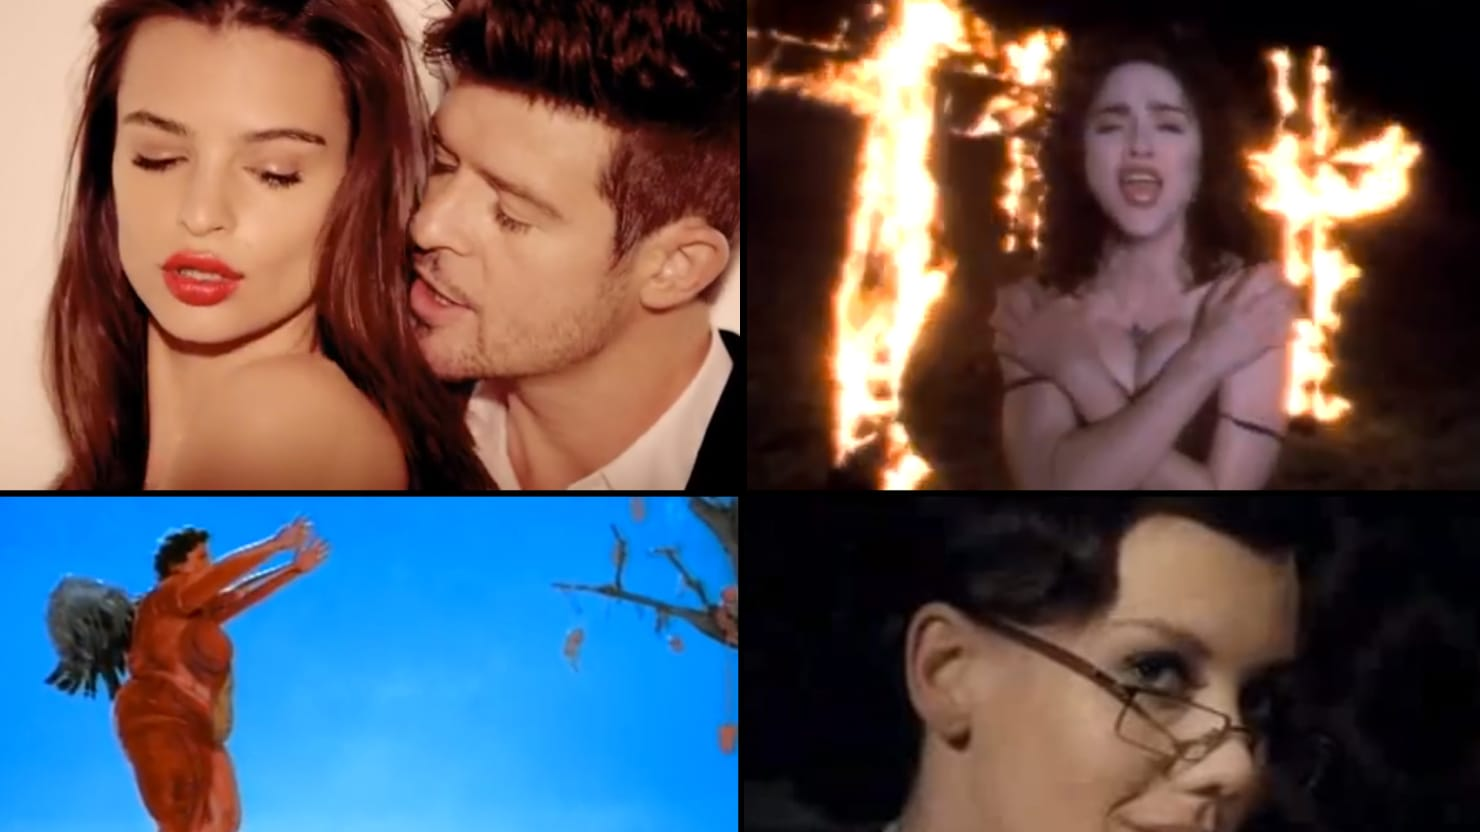 Robin Thicke, Madonna & More of Music's Most Scandalous Videos